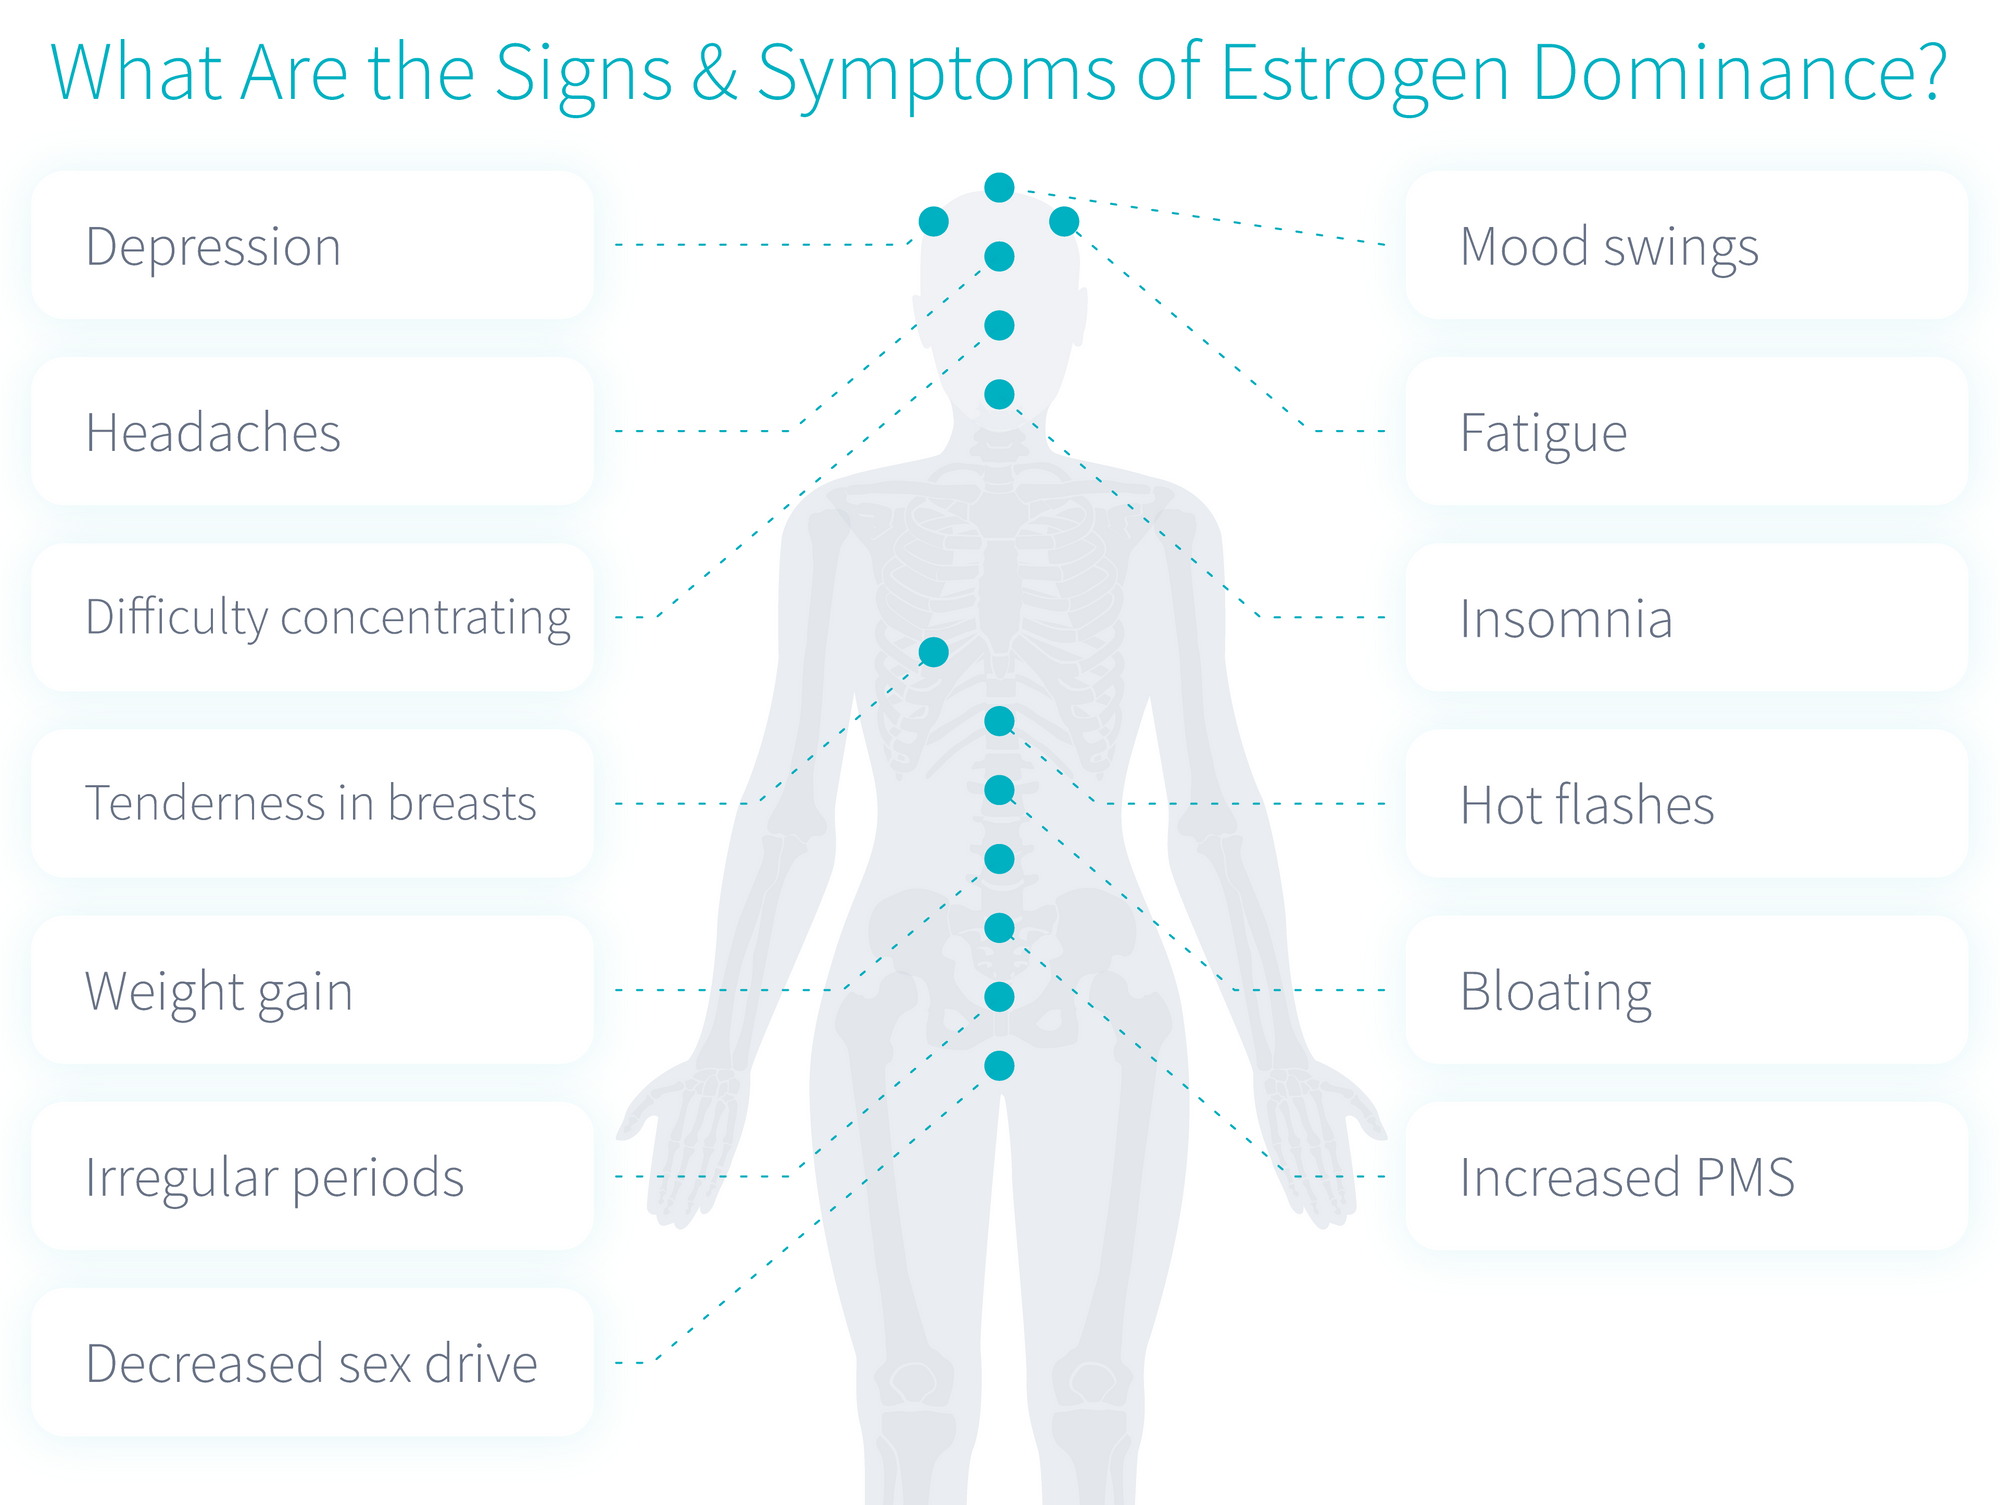 symptoms-of-estrogen-dominance